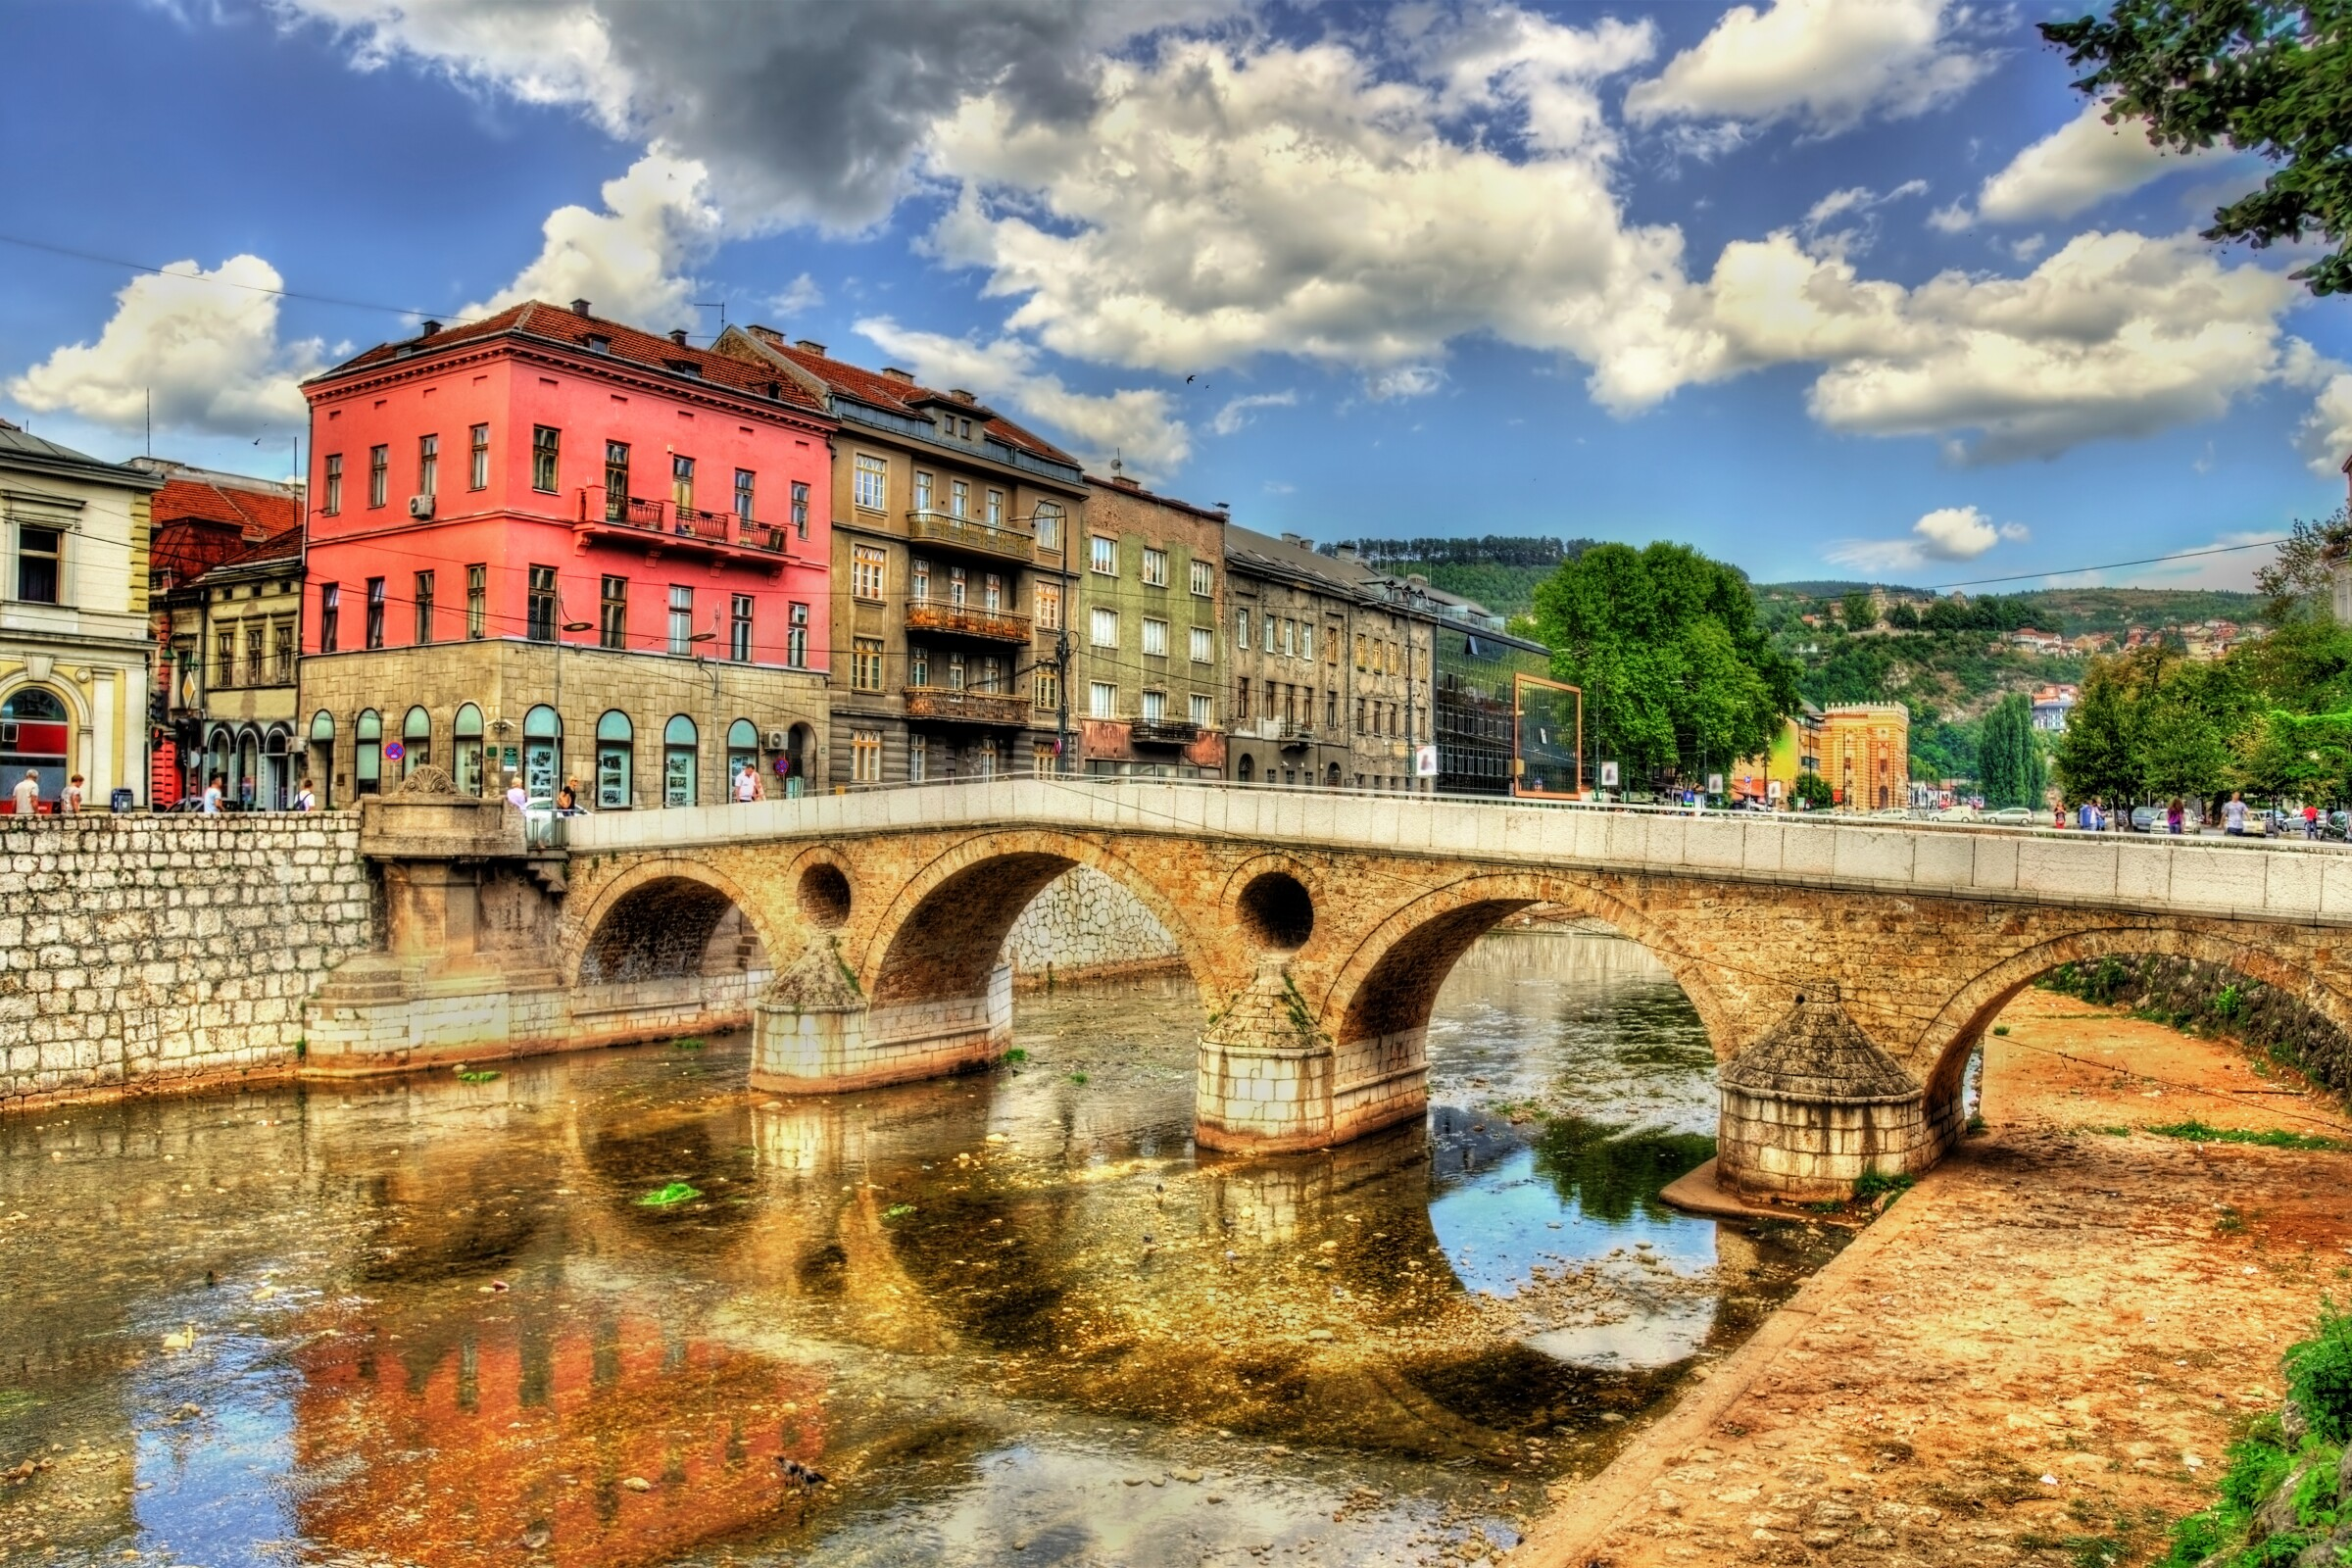 The Latin Bridge is one of many crossings along the Miljacka River in Sarajevo, Bosnia-Herzegovina, whose old quarter has buildings that date back centuries.